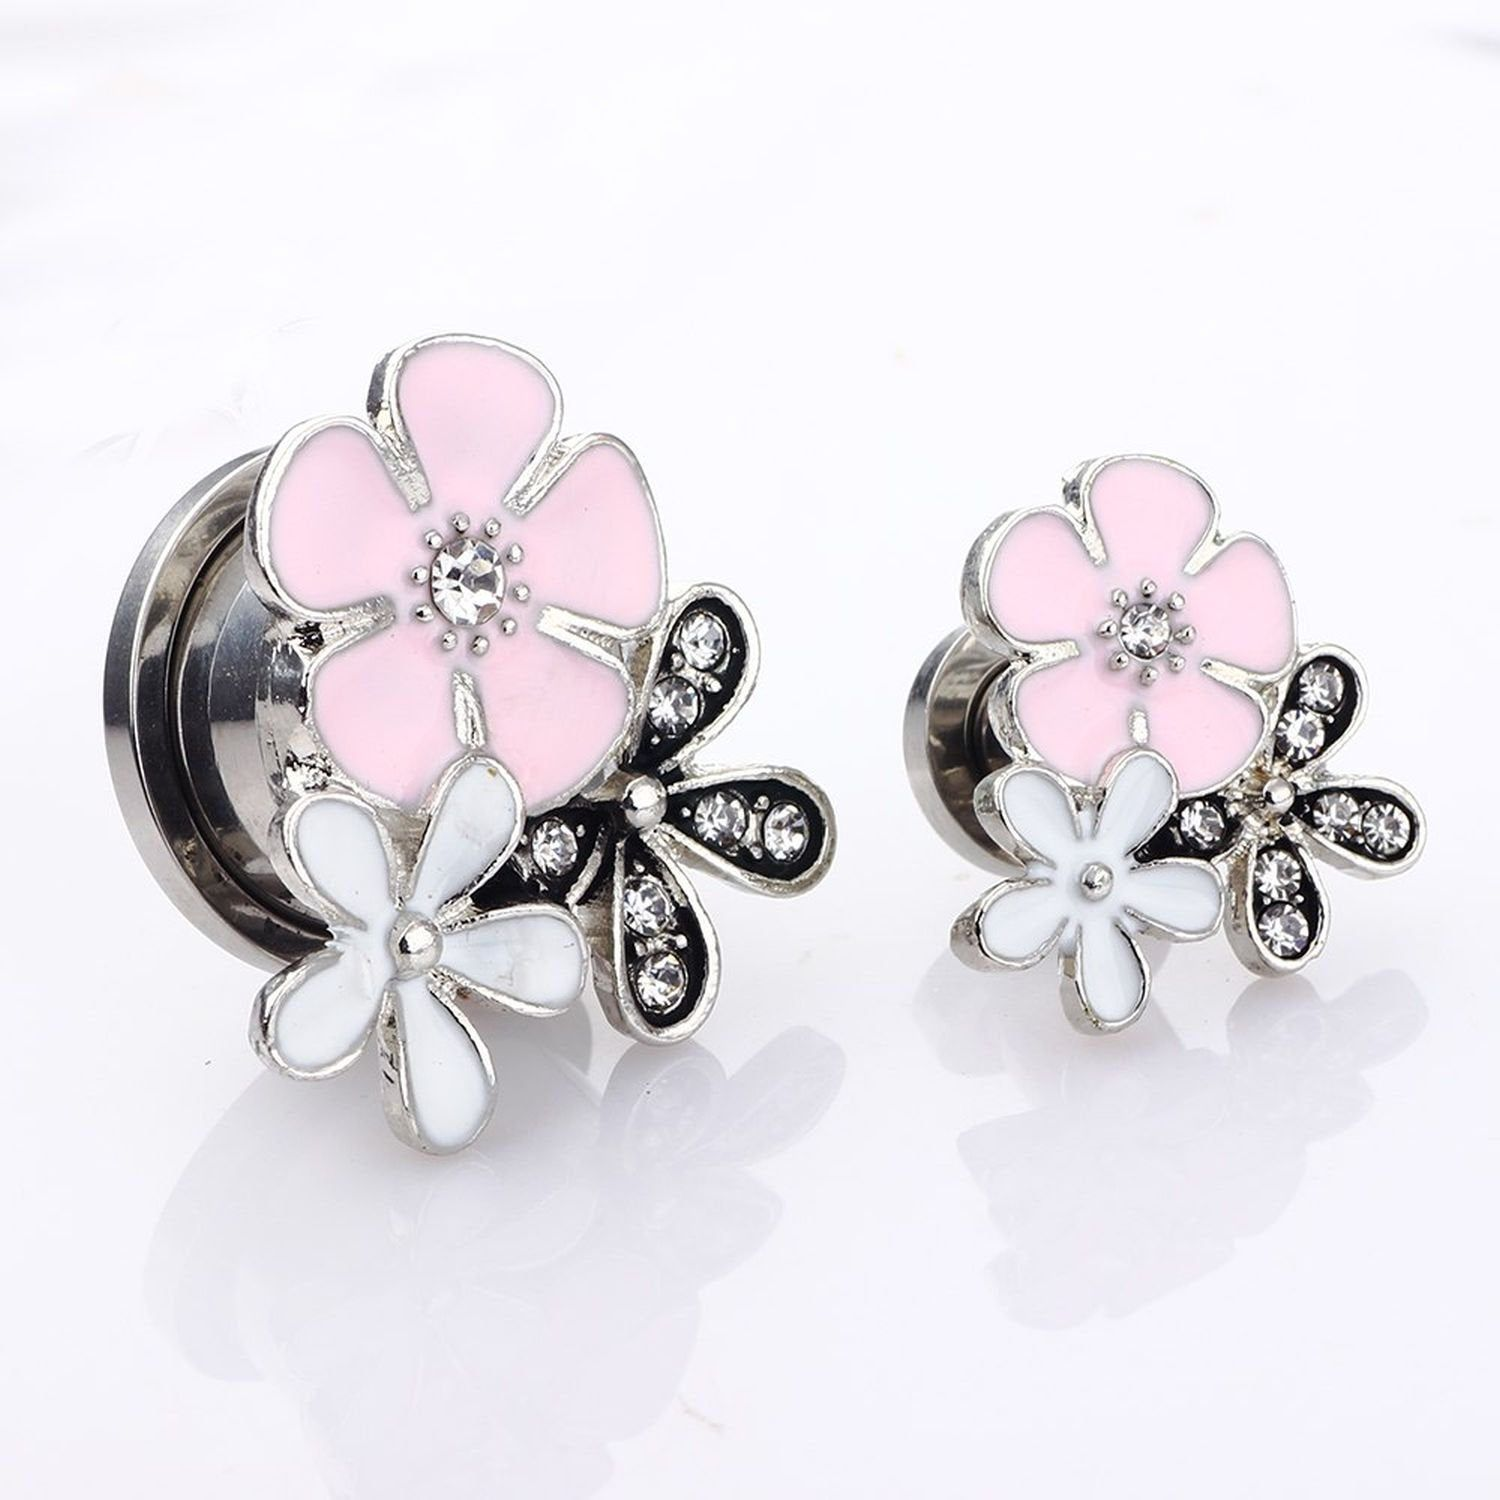 Pair Pink and White Flower Screw Fit Surgical Steel Plugs Sizes 6mm to 18mm